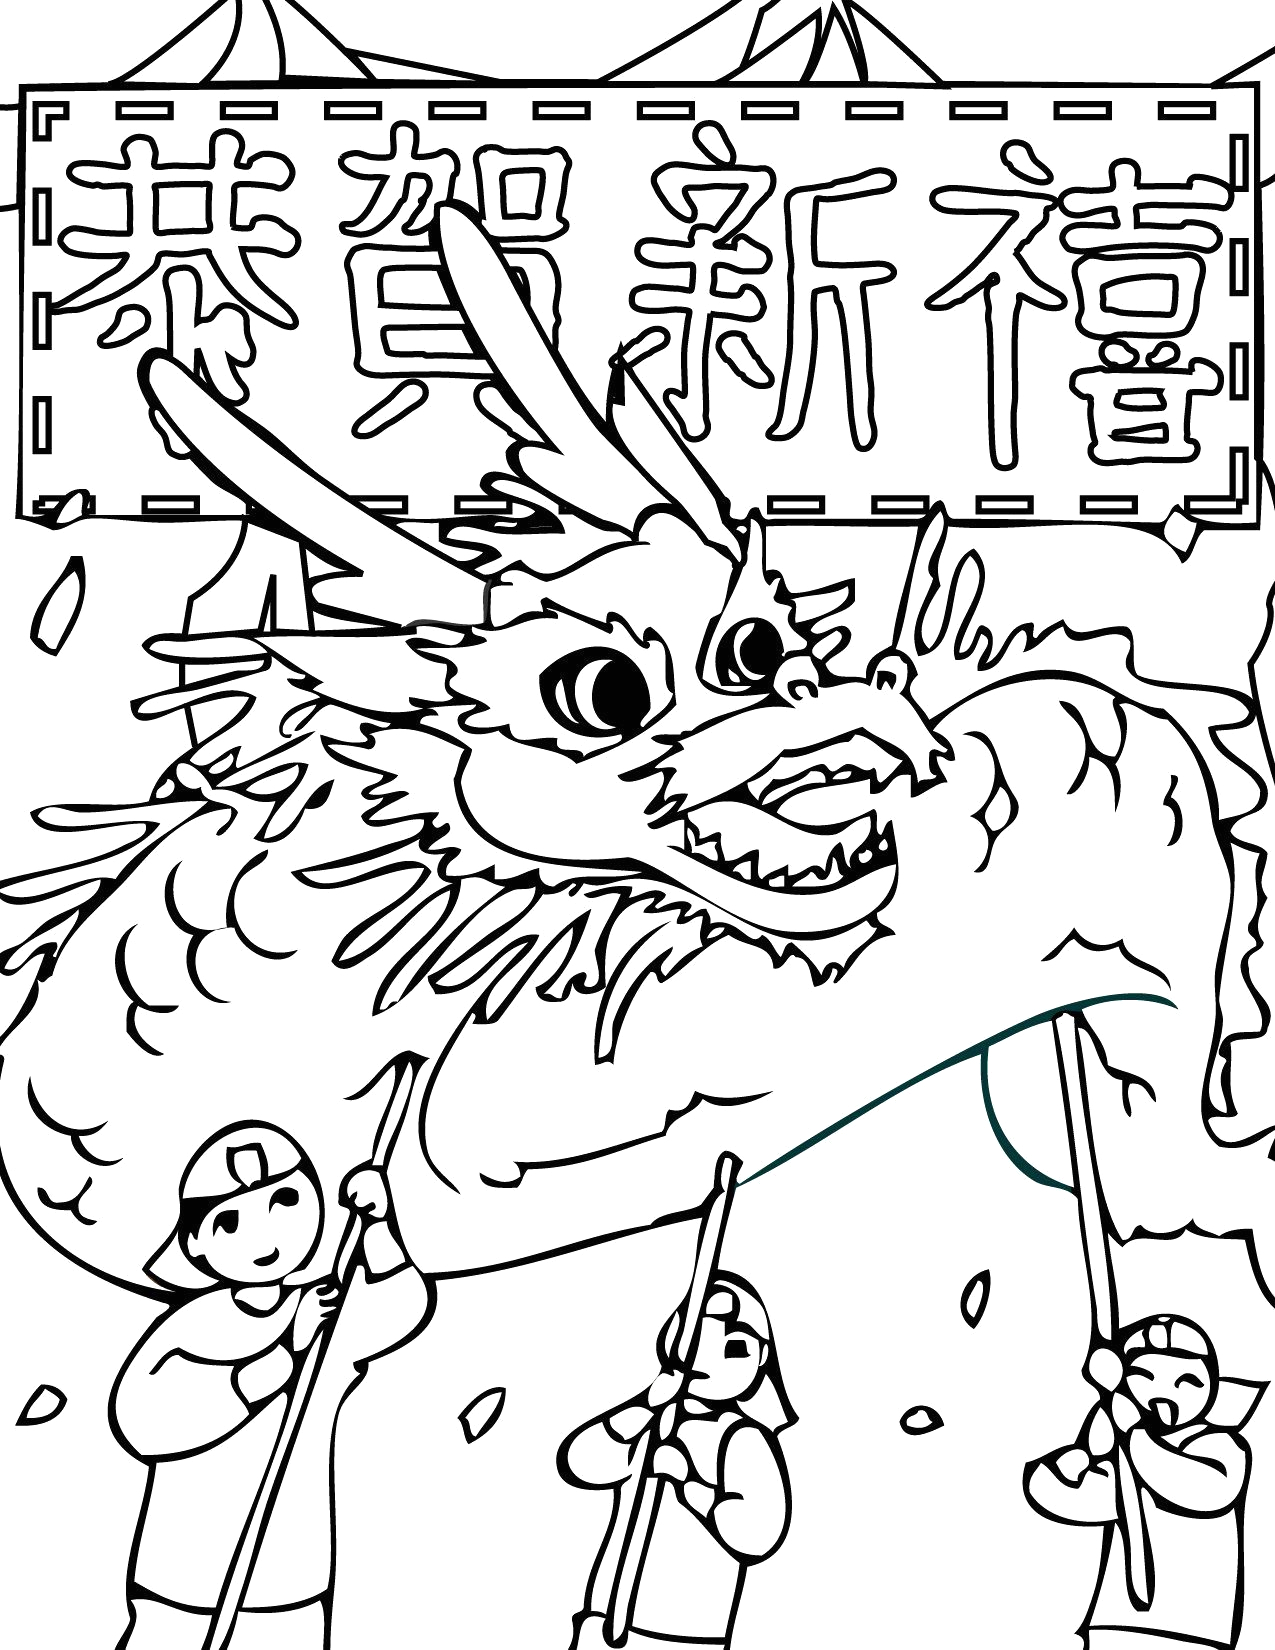 Free Printable Chinese New Year Coloring Pages Chinese New Year Coloring Pages Best Coloring Pages for Kids